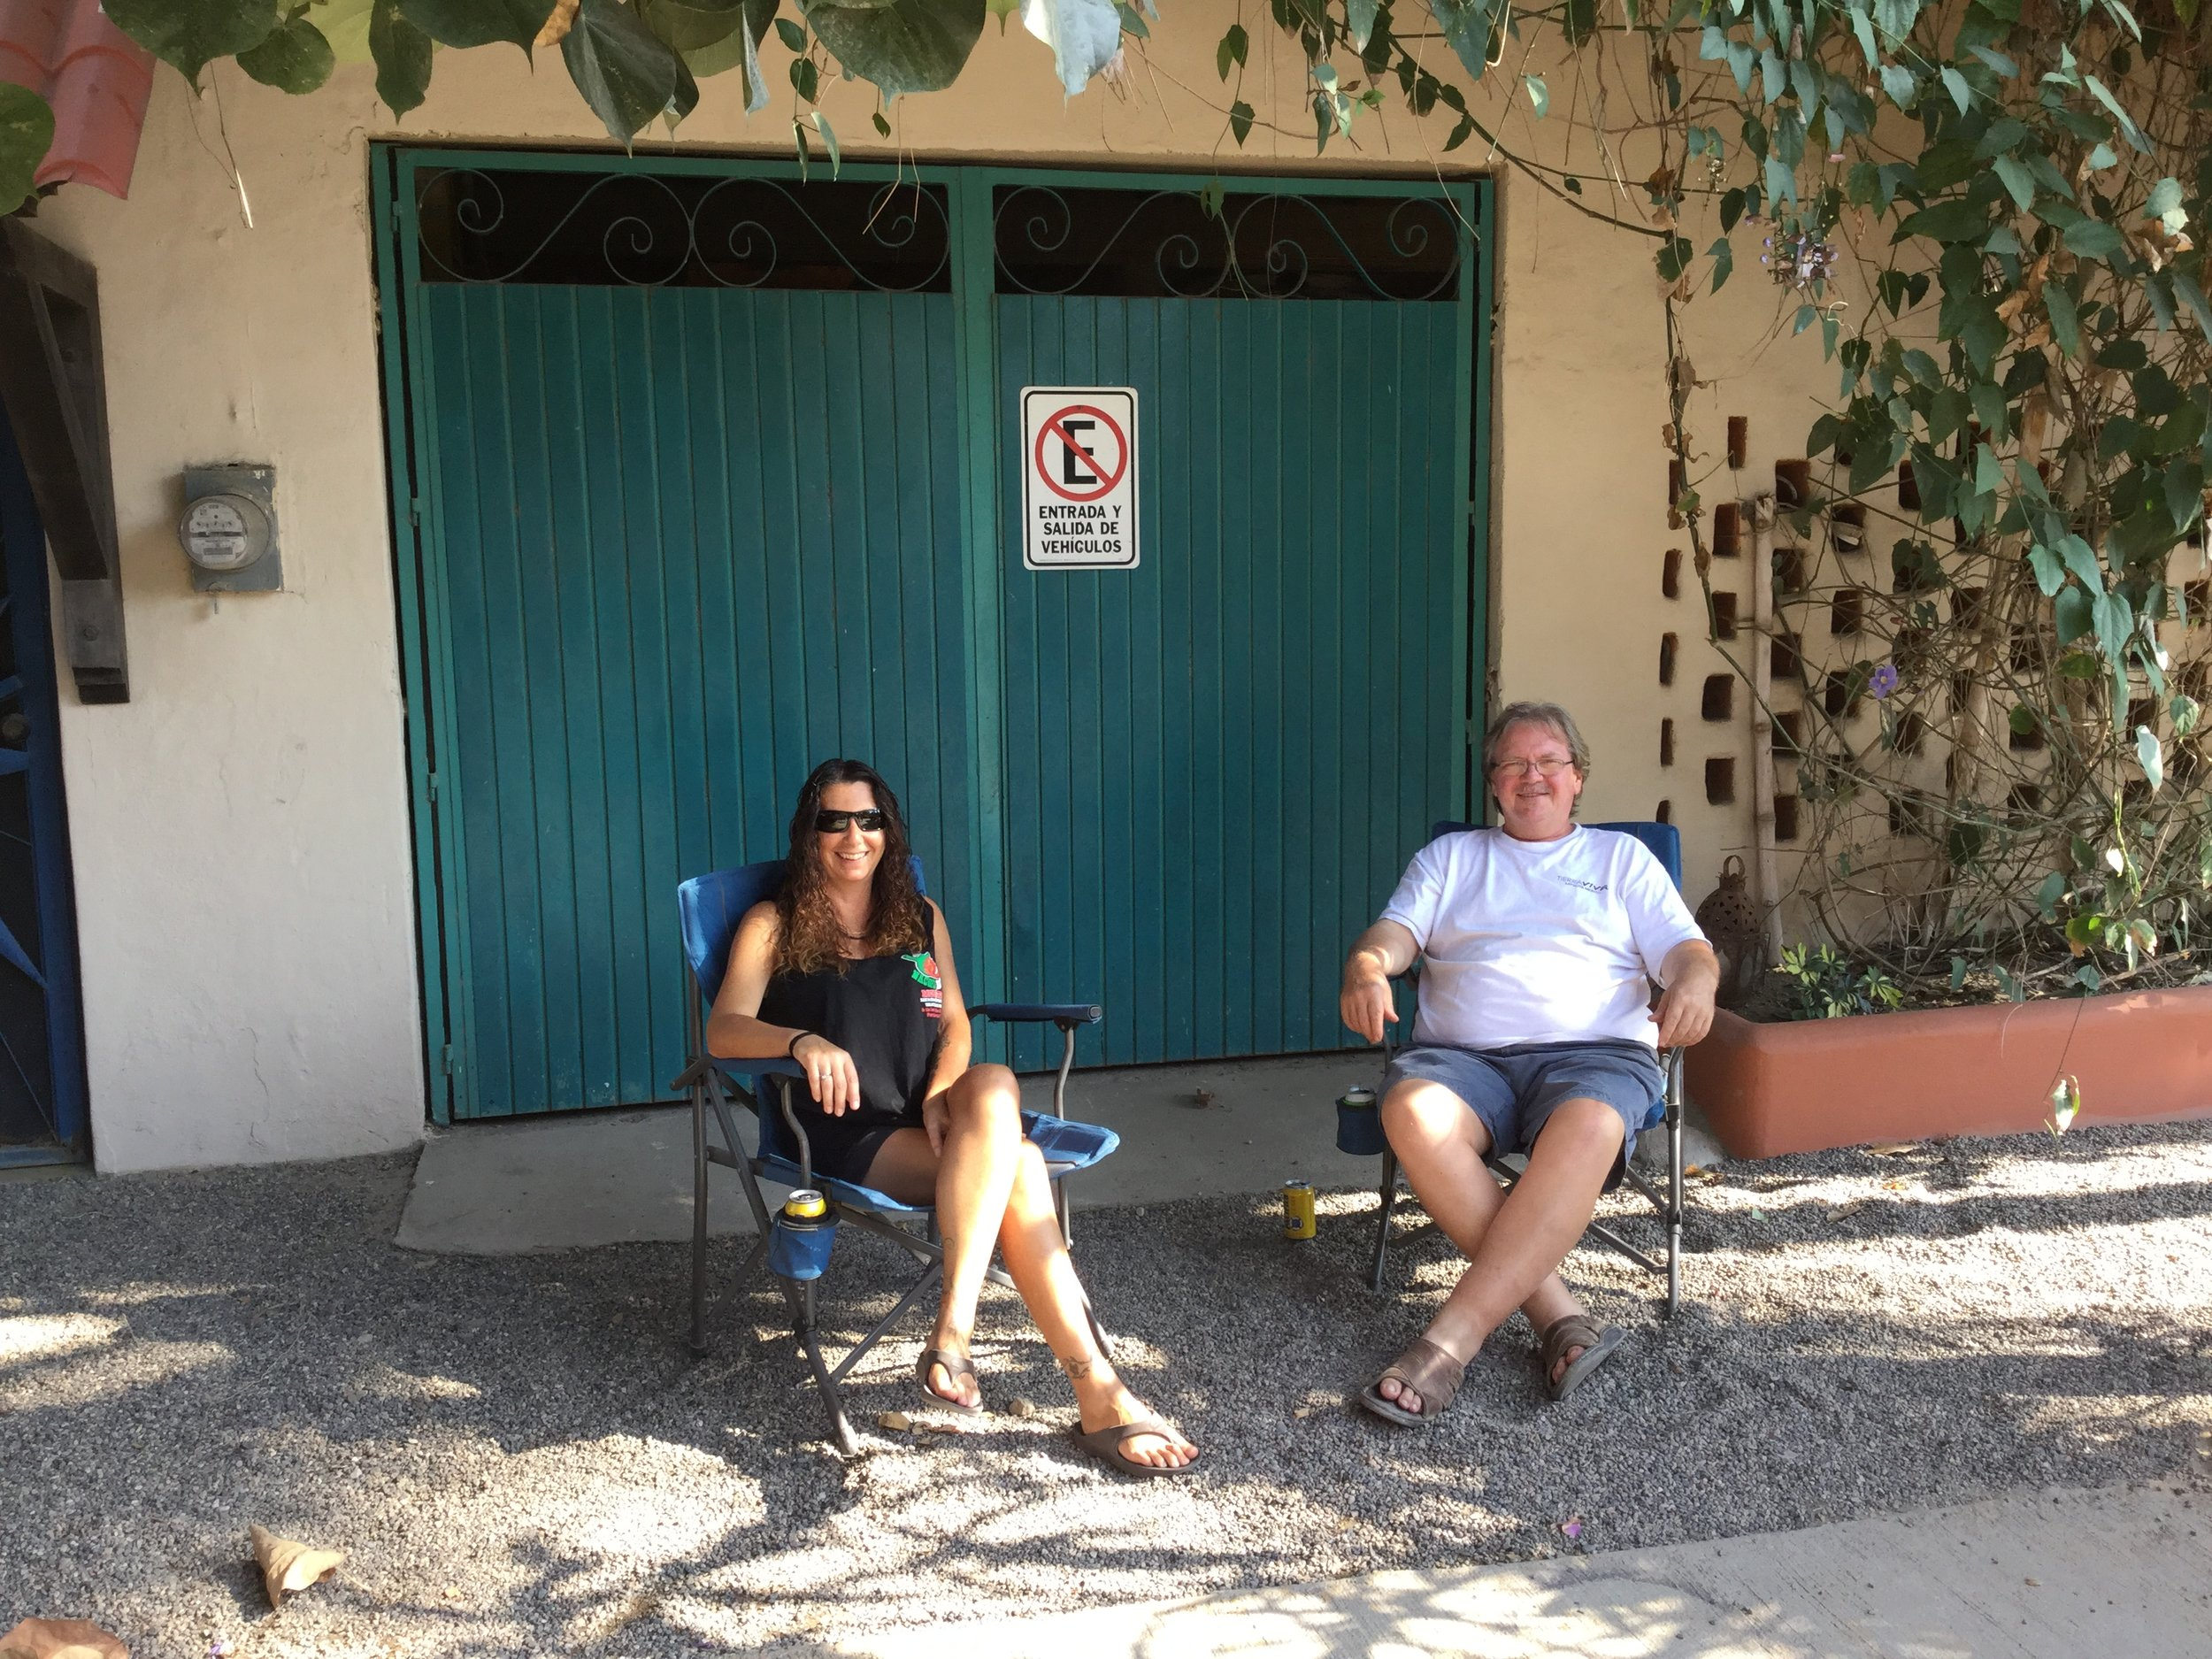 Here are Charlie and Melanie, the owners of our hotel, showing how Mexicans pass their free afternoons. Just put a chair on the sidewalk outside your home, open a beer, and you are set.